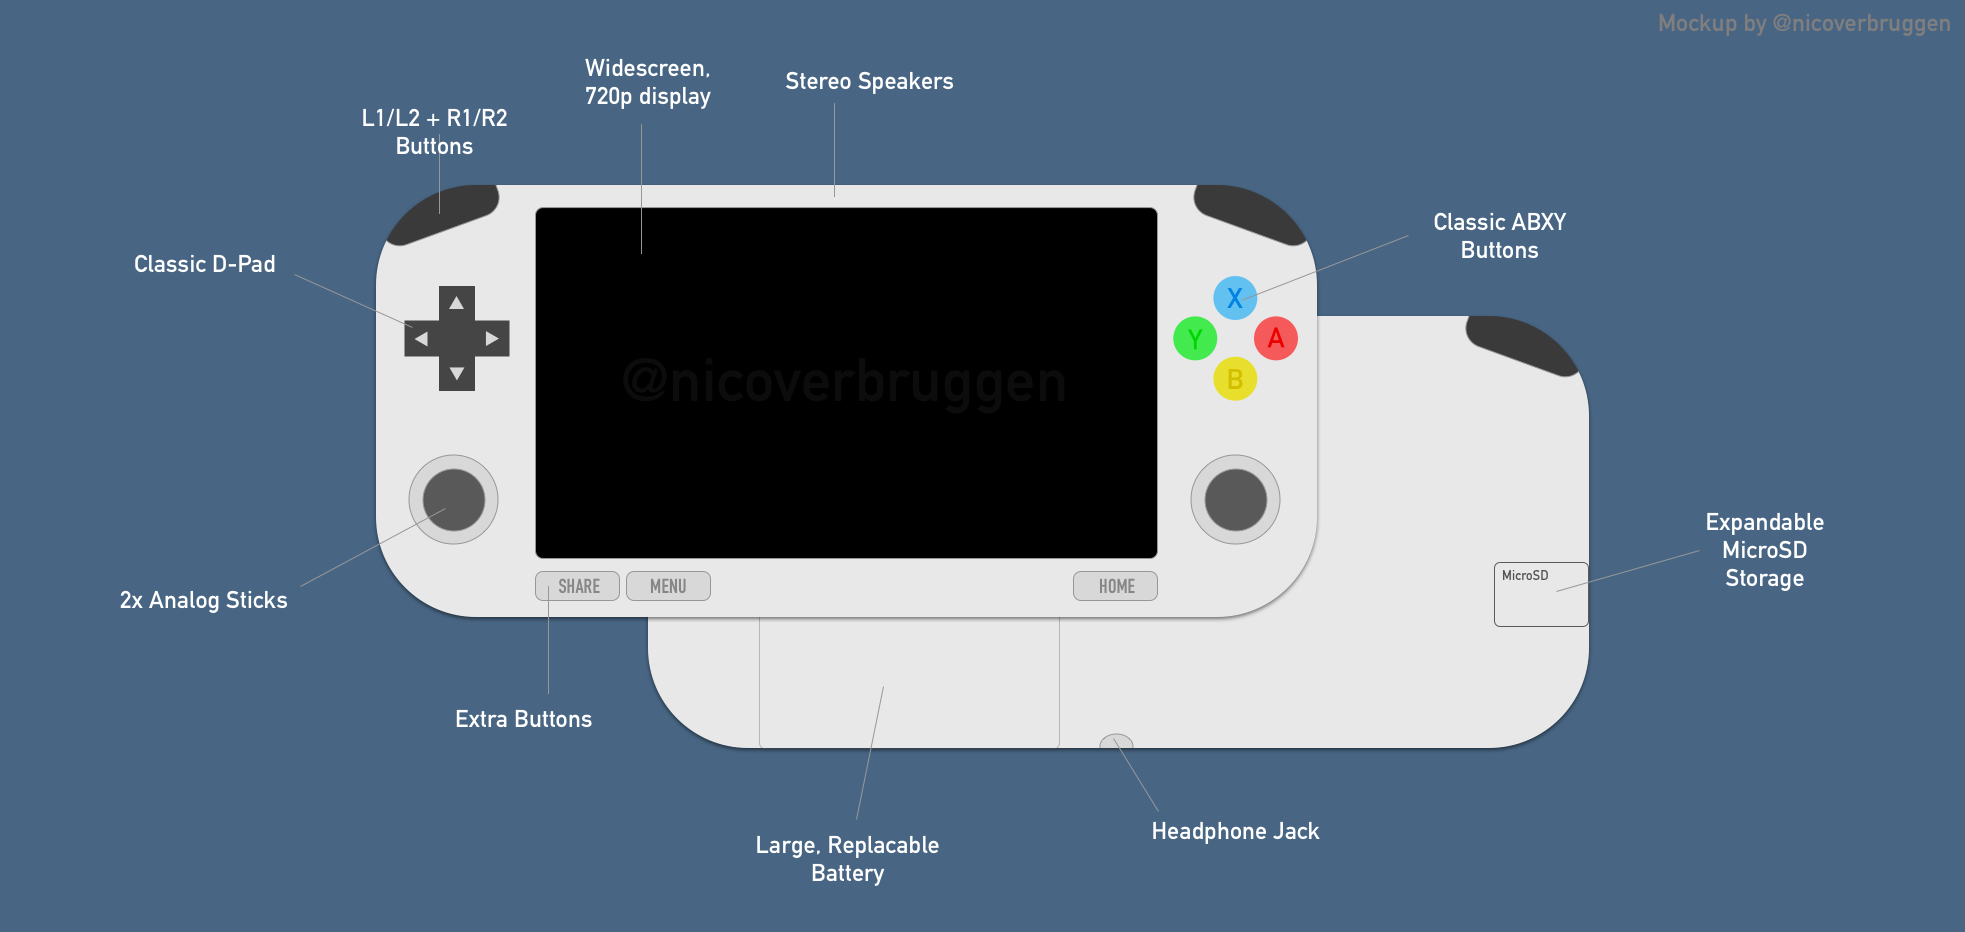 Perhaps this is the ideal handheld? I've made a quick mockup to reflect what handheld I'd love to have. Now, this could be aesthetically pleasing, but this is only a mockup and deserves a better design, some day. (At the bottom, there could be a USB-C port for charging the device, and possibly to output the screen's display to a television.)